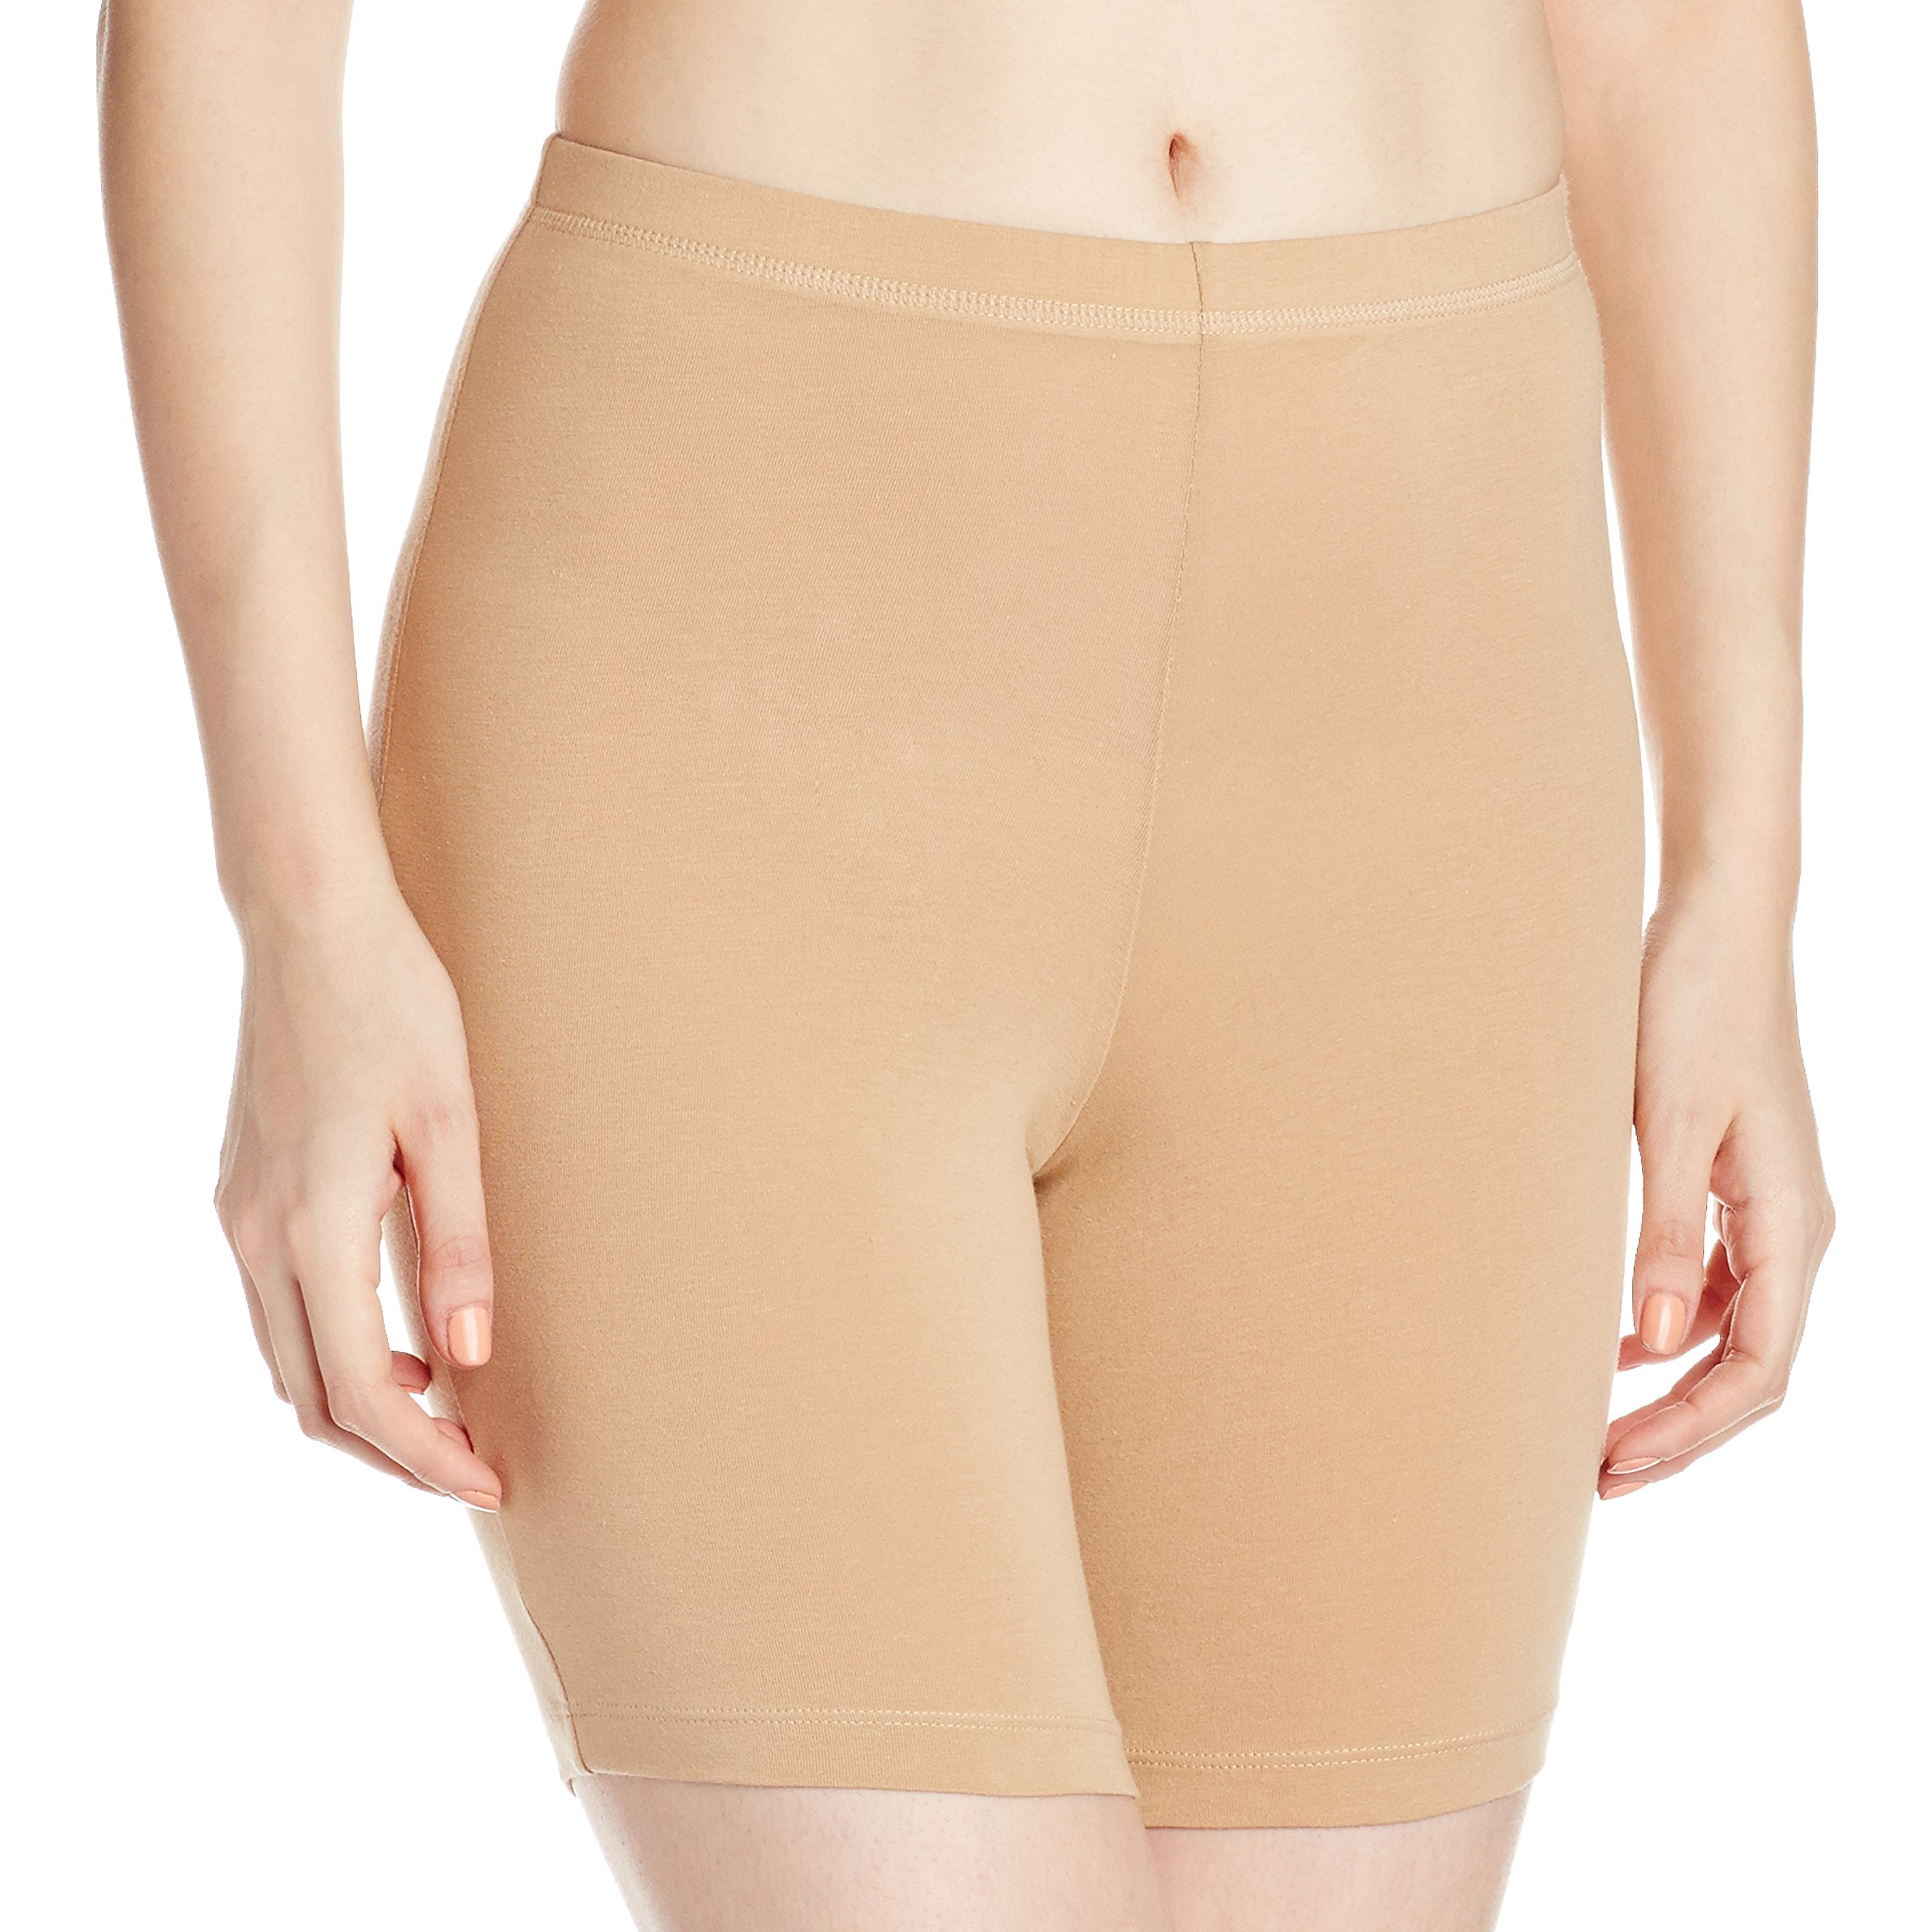 Jockey Women's Cotton Shorties product image